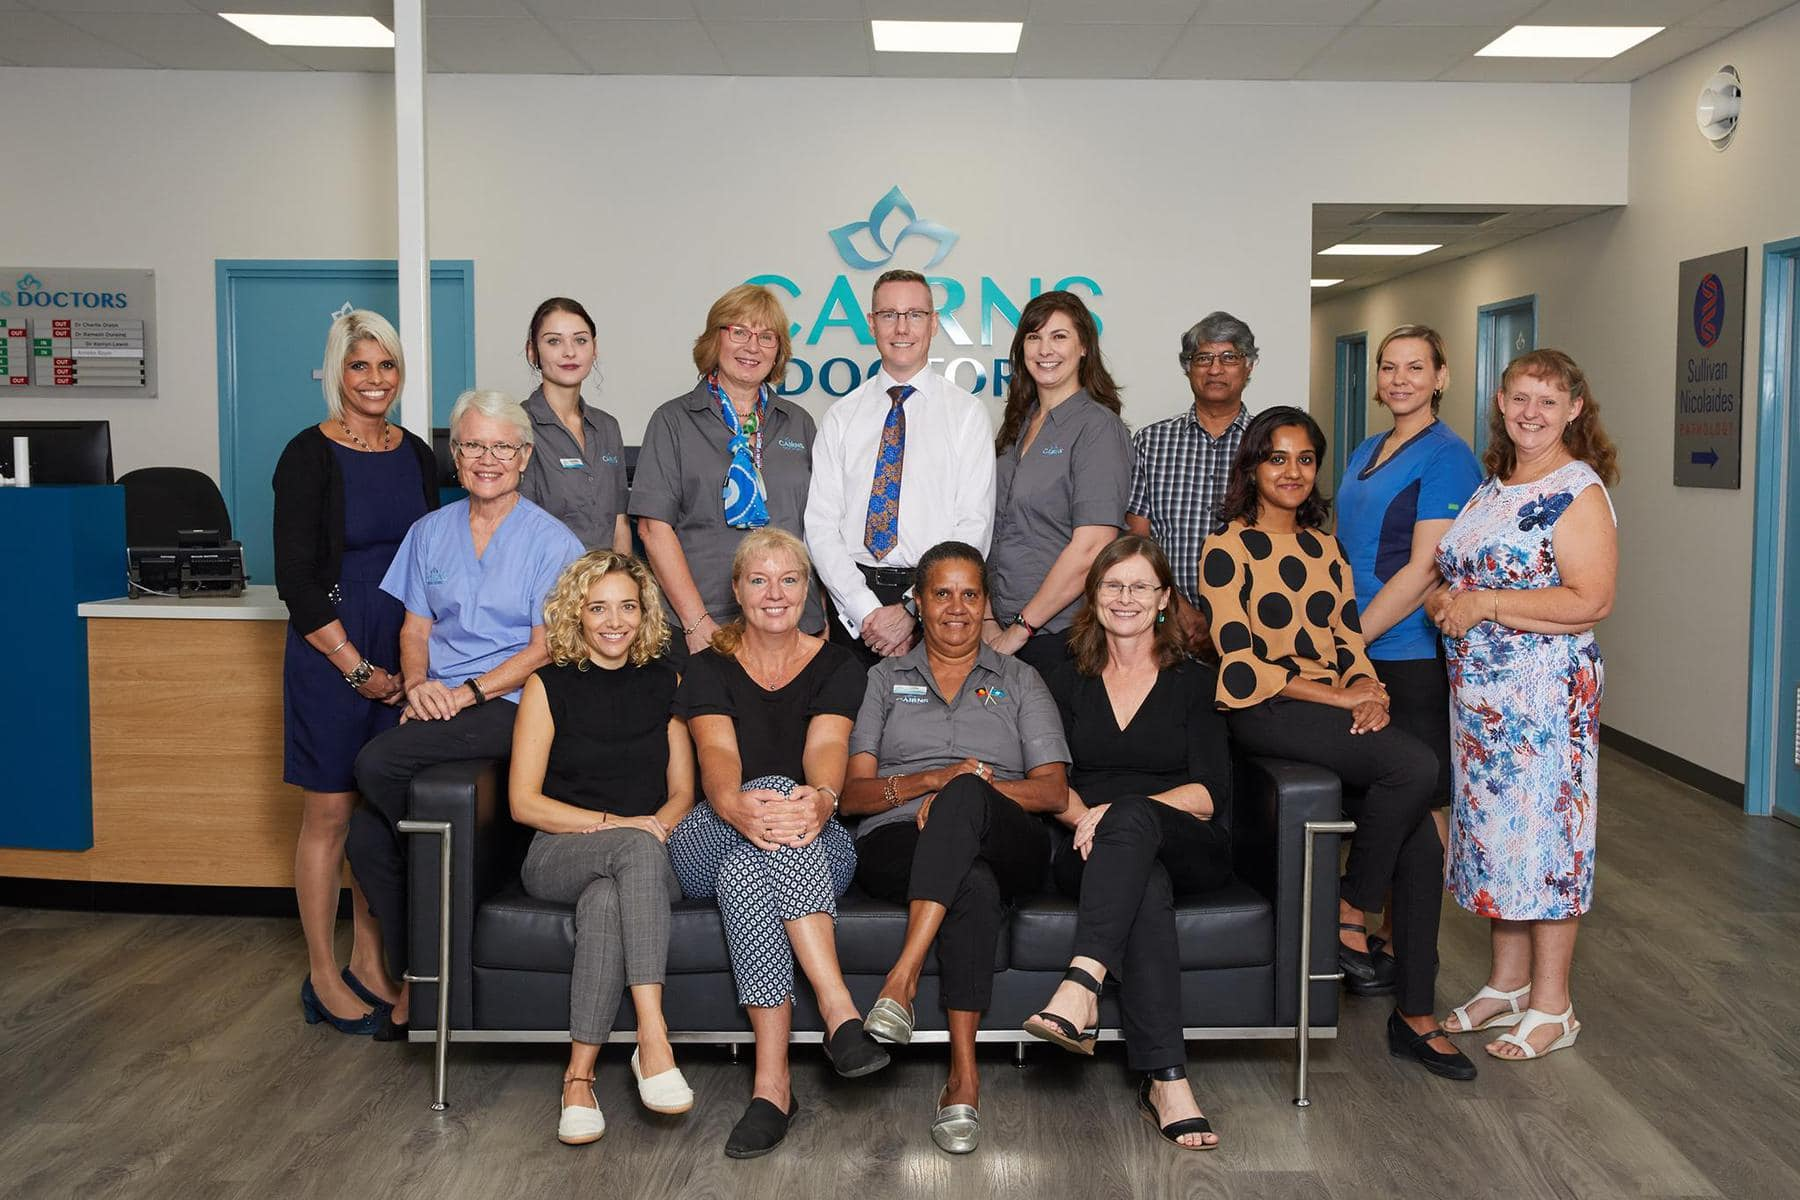 Join the team – Cairns Doctors